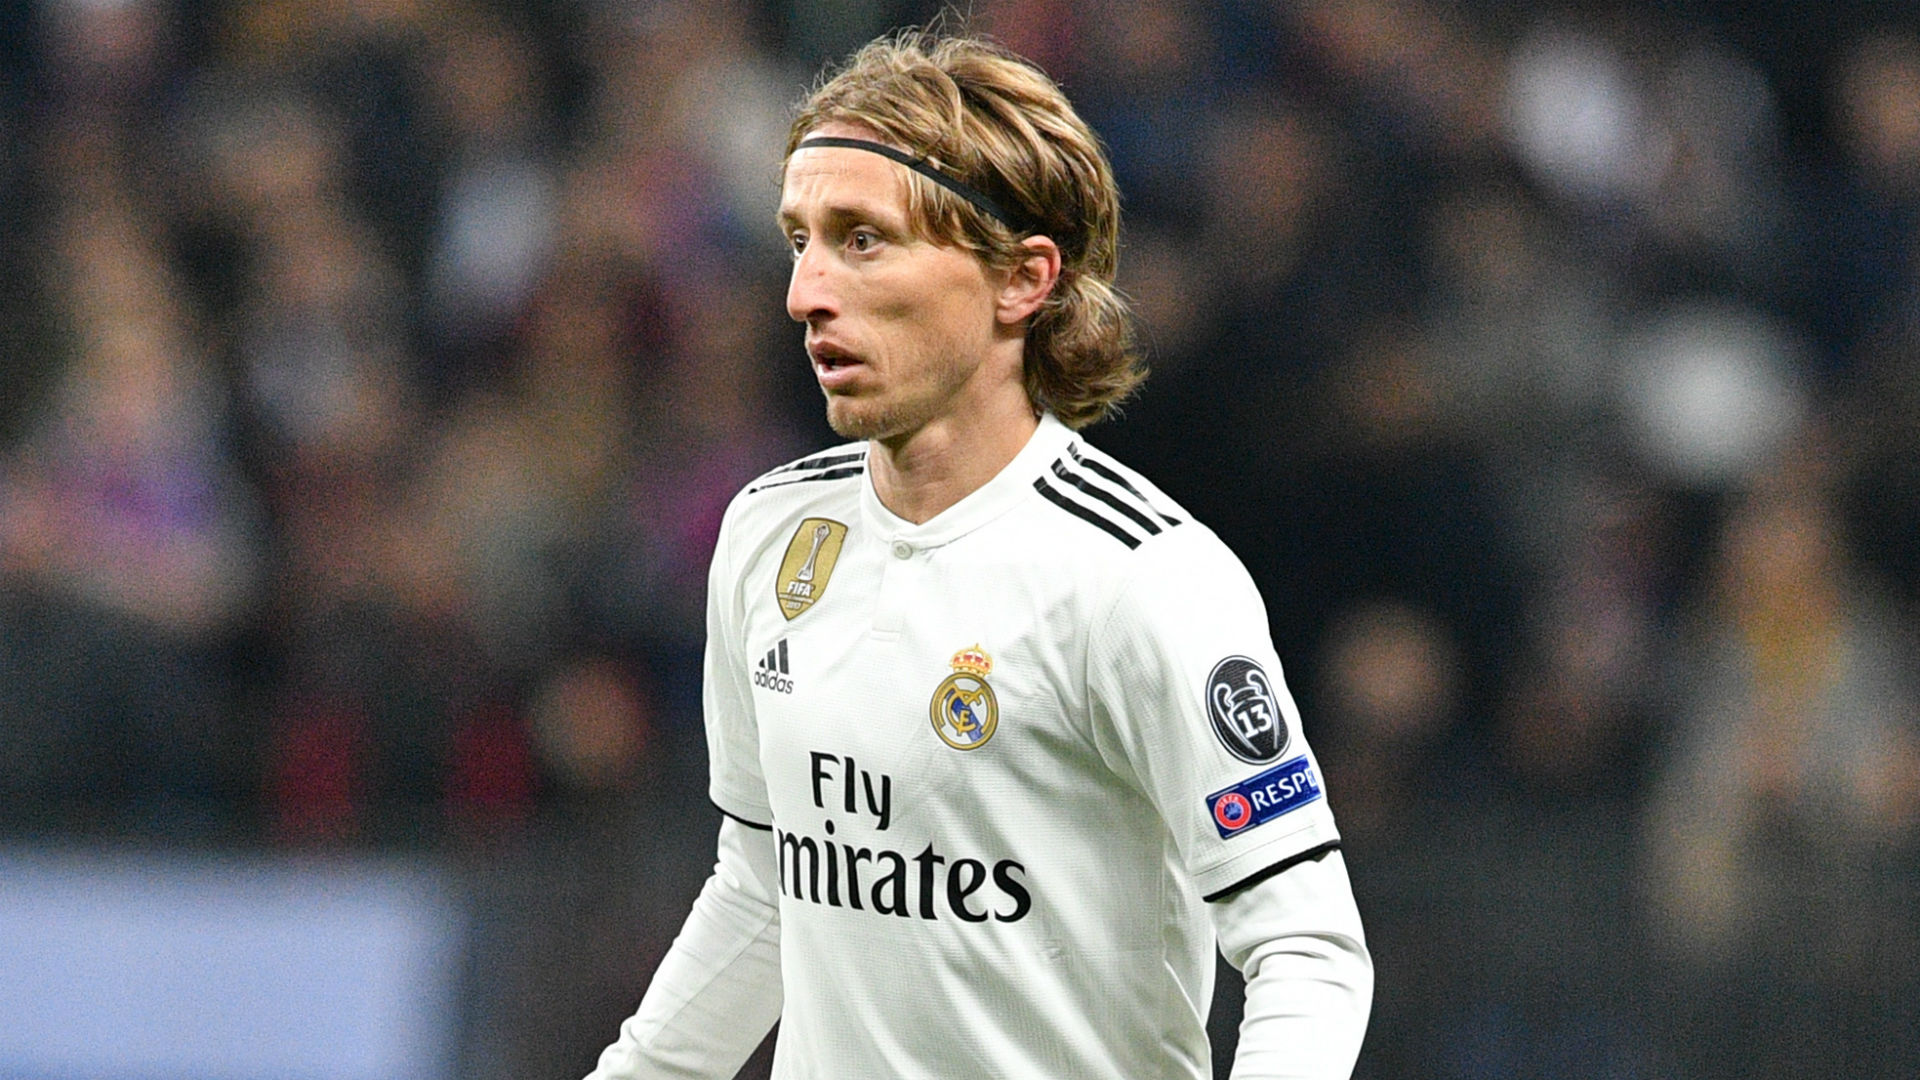 Eden Hazard: Luka Modric deserves to win Ballon d'Or